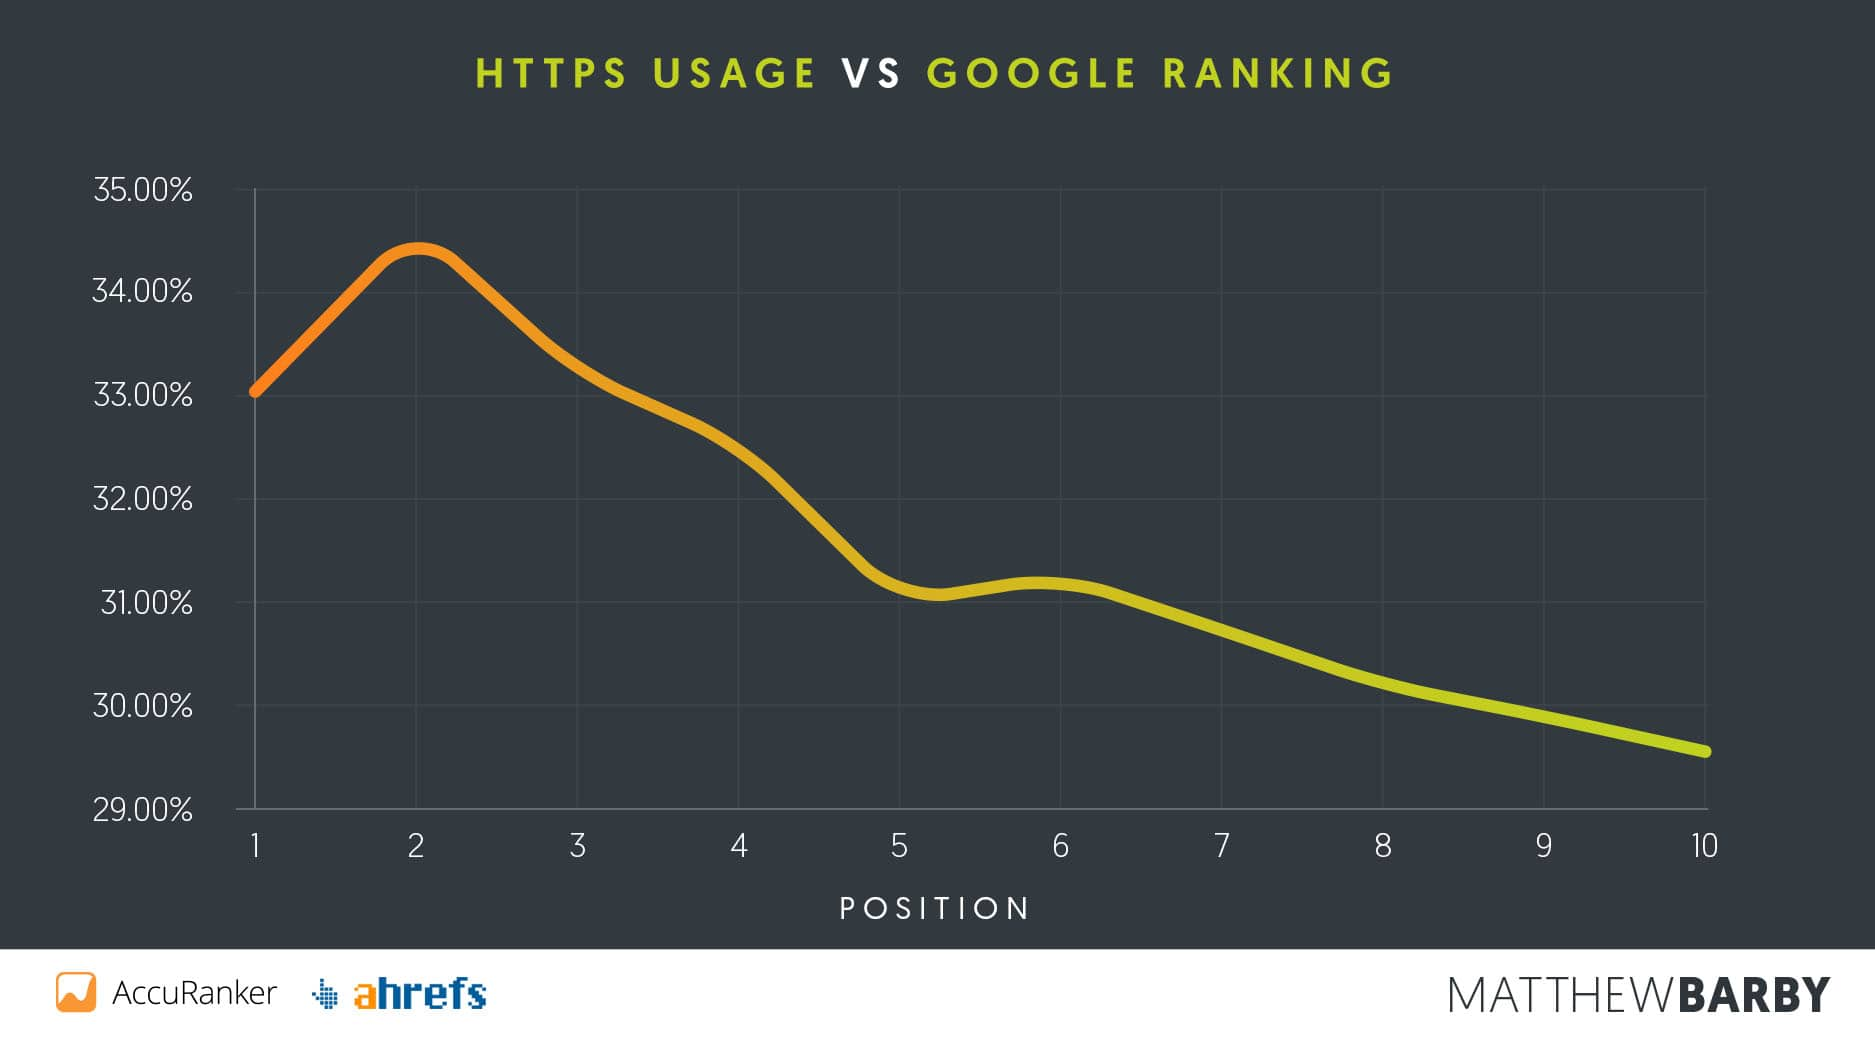 Uso do HTTPS vs Google ranking